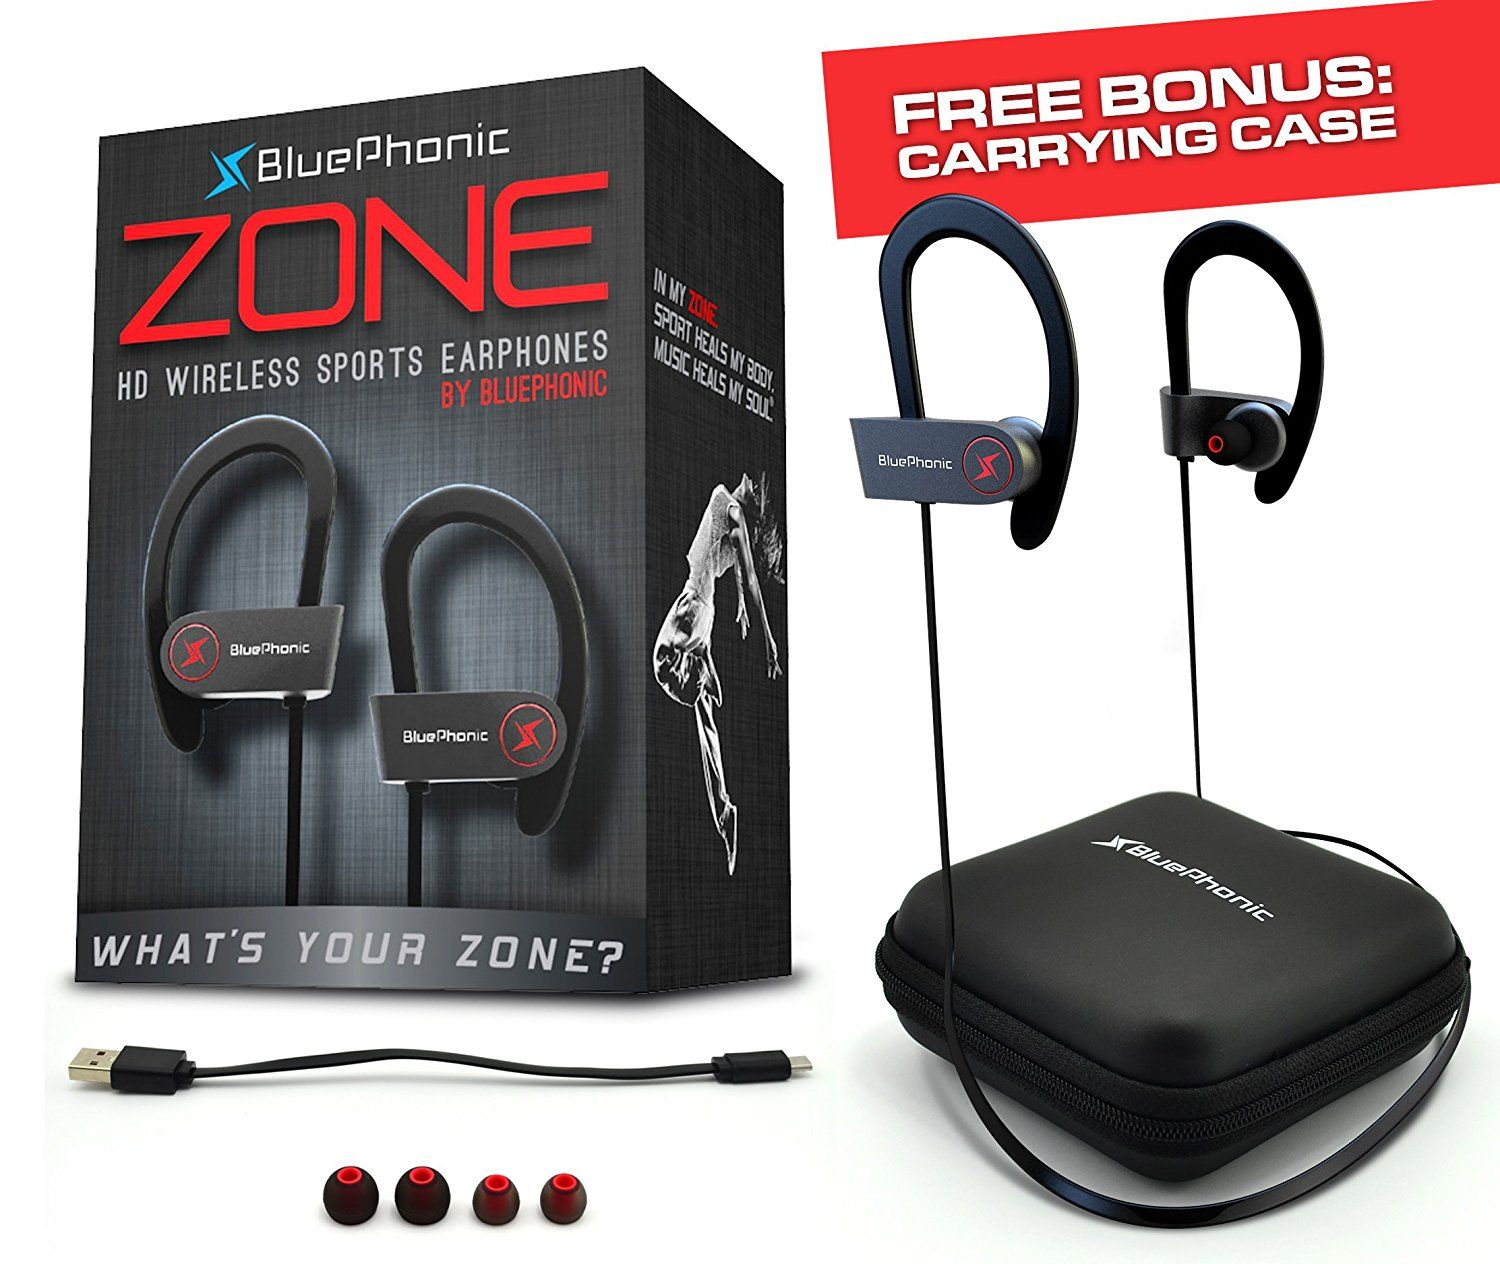 05ab1788a7f ... Hd Beats Sound Quality - Sweat Proof Stable Fit In Ear Workout Earbuds  - Ergonomic Running Earphones - Noise Cancelling Microphone w/ Travel Case  - by ...